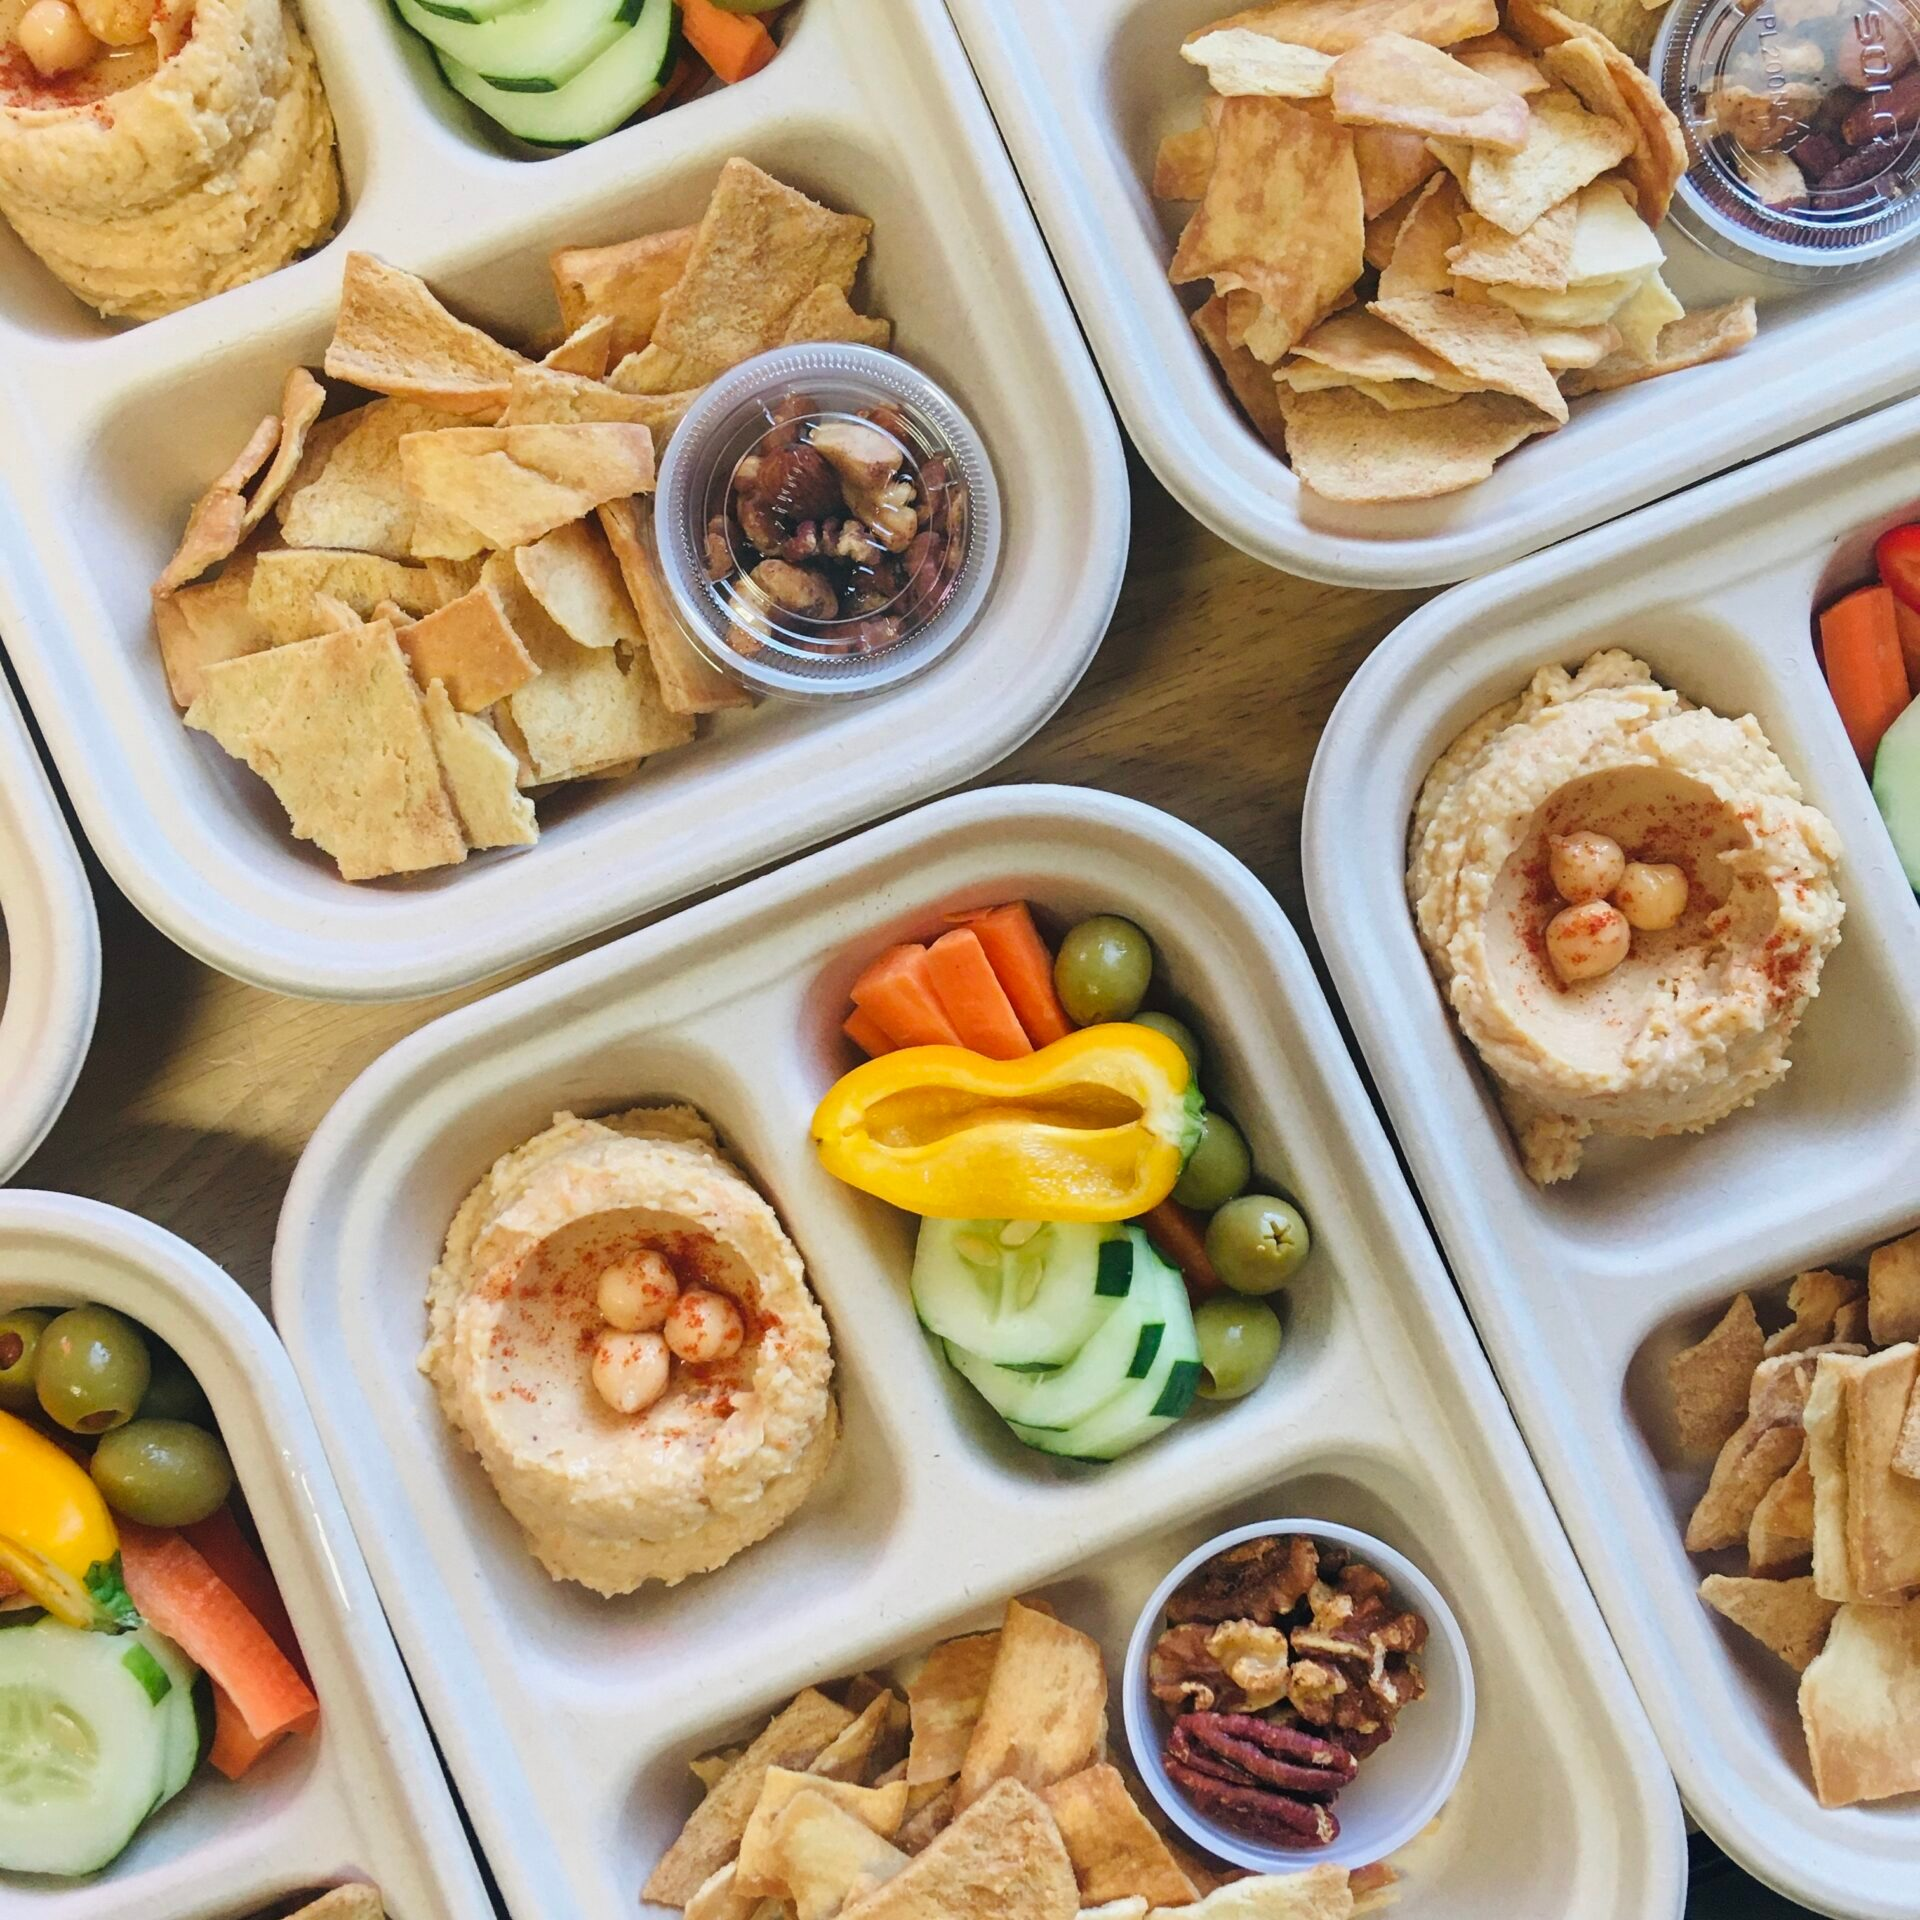 3 compartment food container with snacks